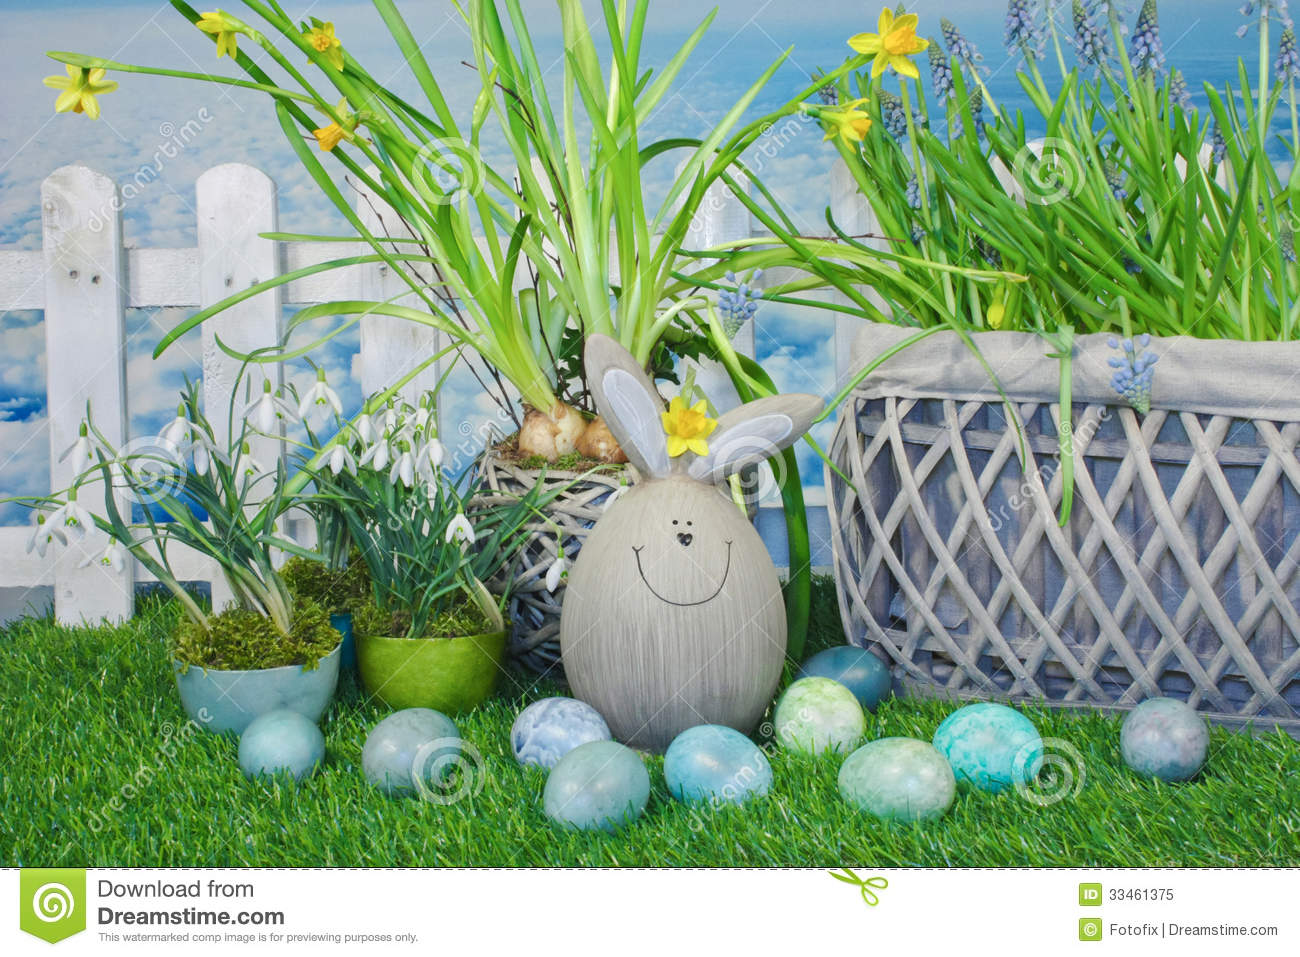 Funny Easter Bunny In Garden Stock Image - Image of flower, green ...